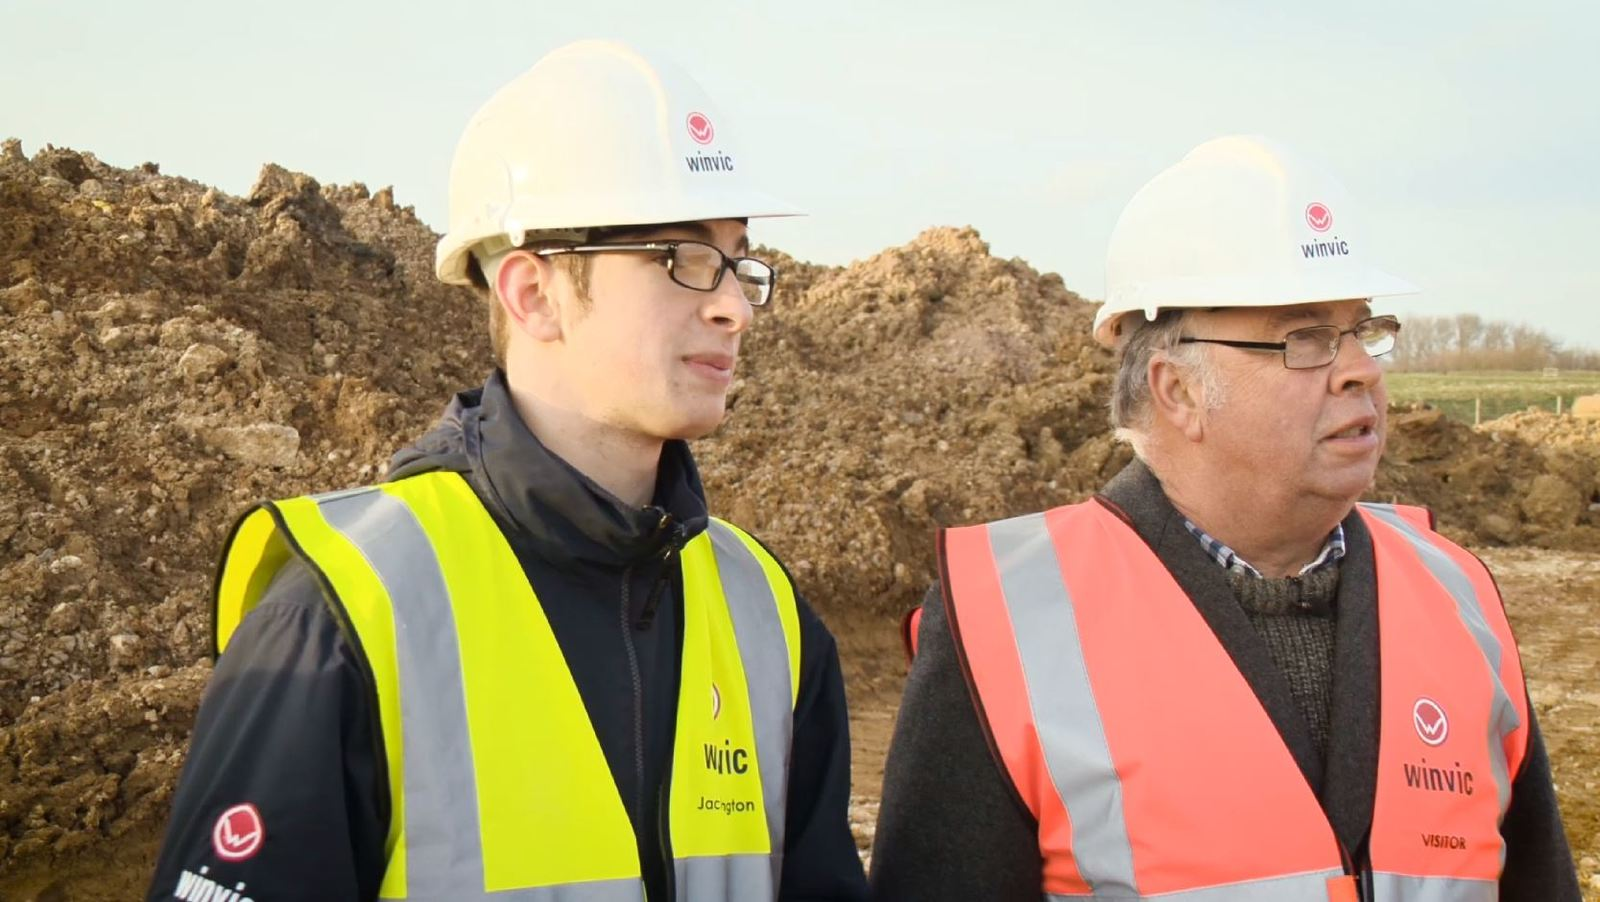 Jack-and-dad-on-site